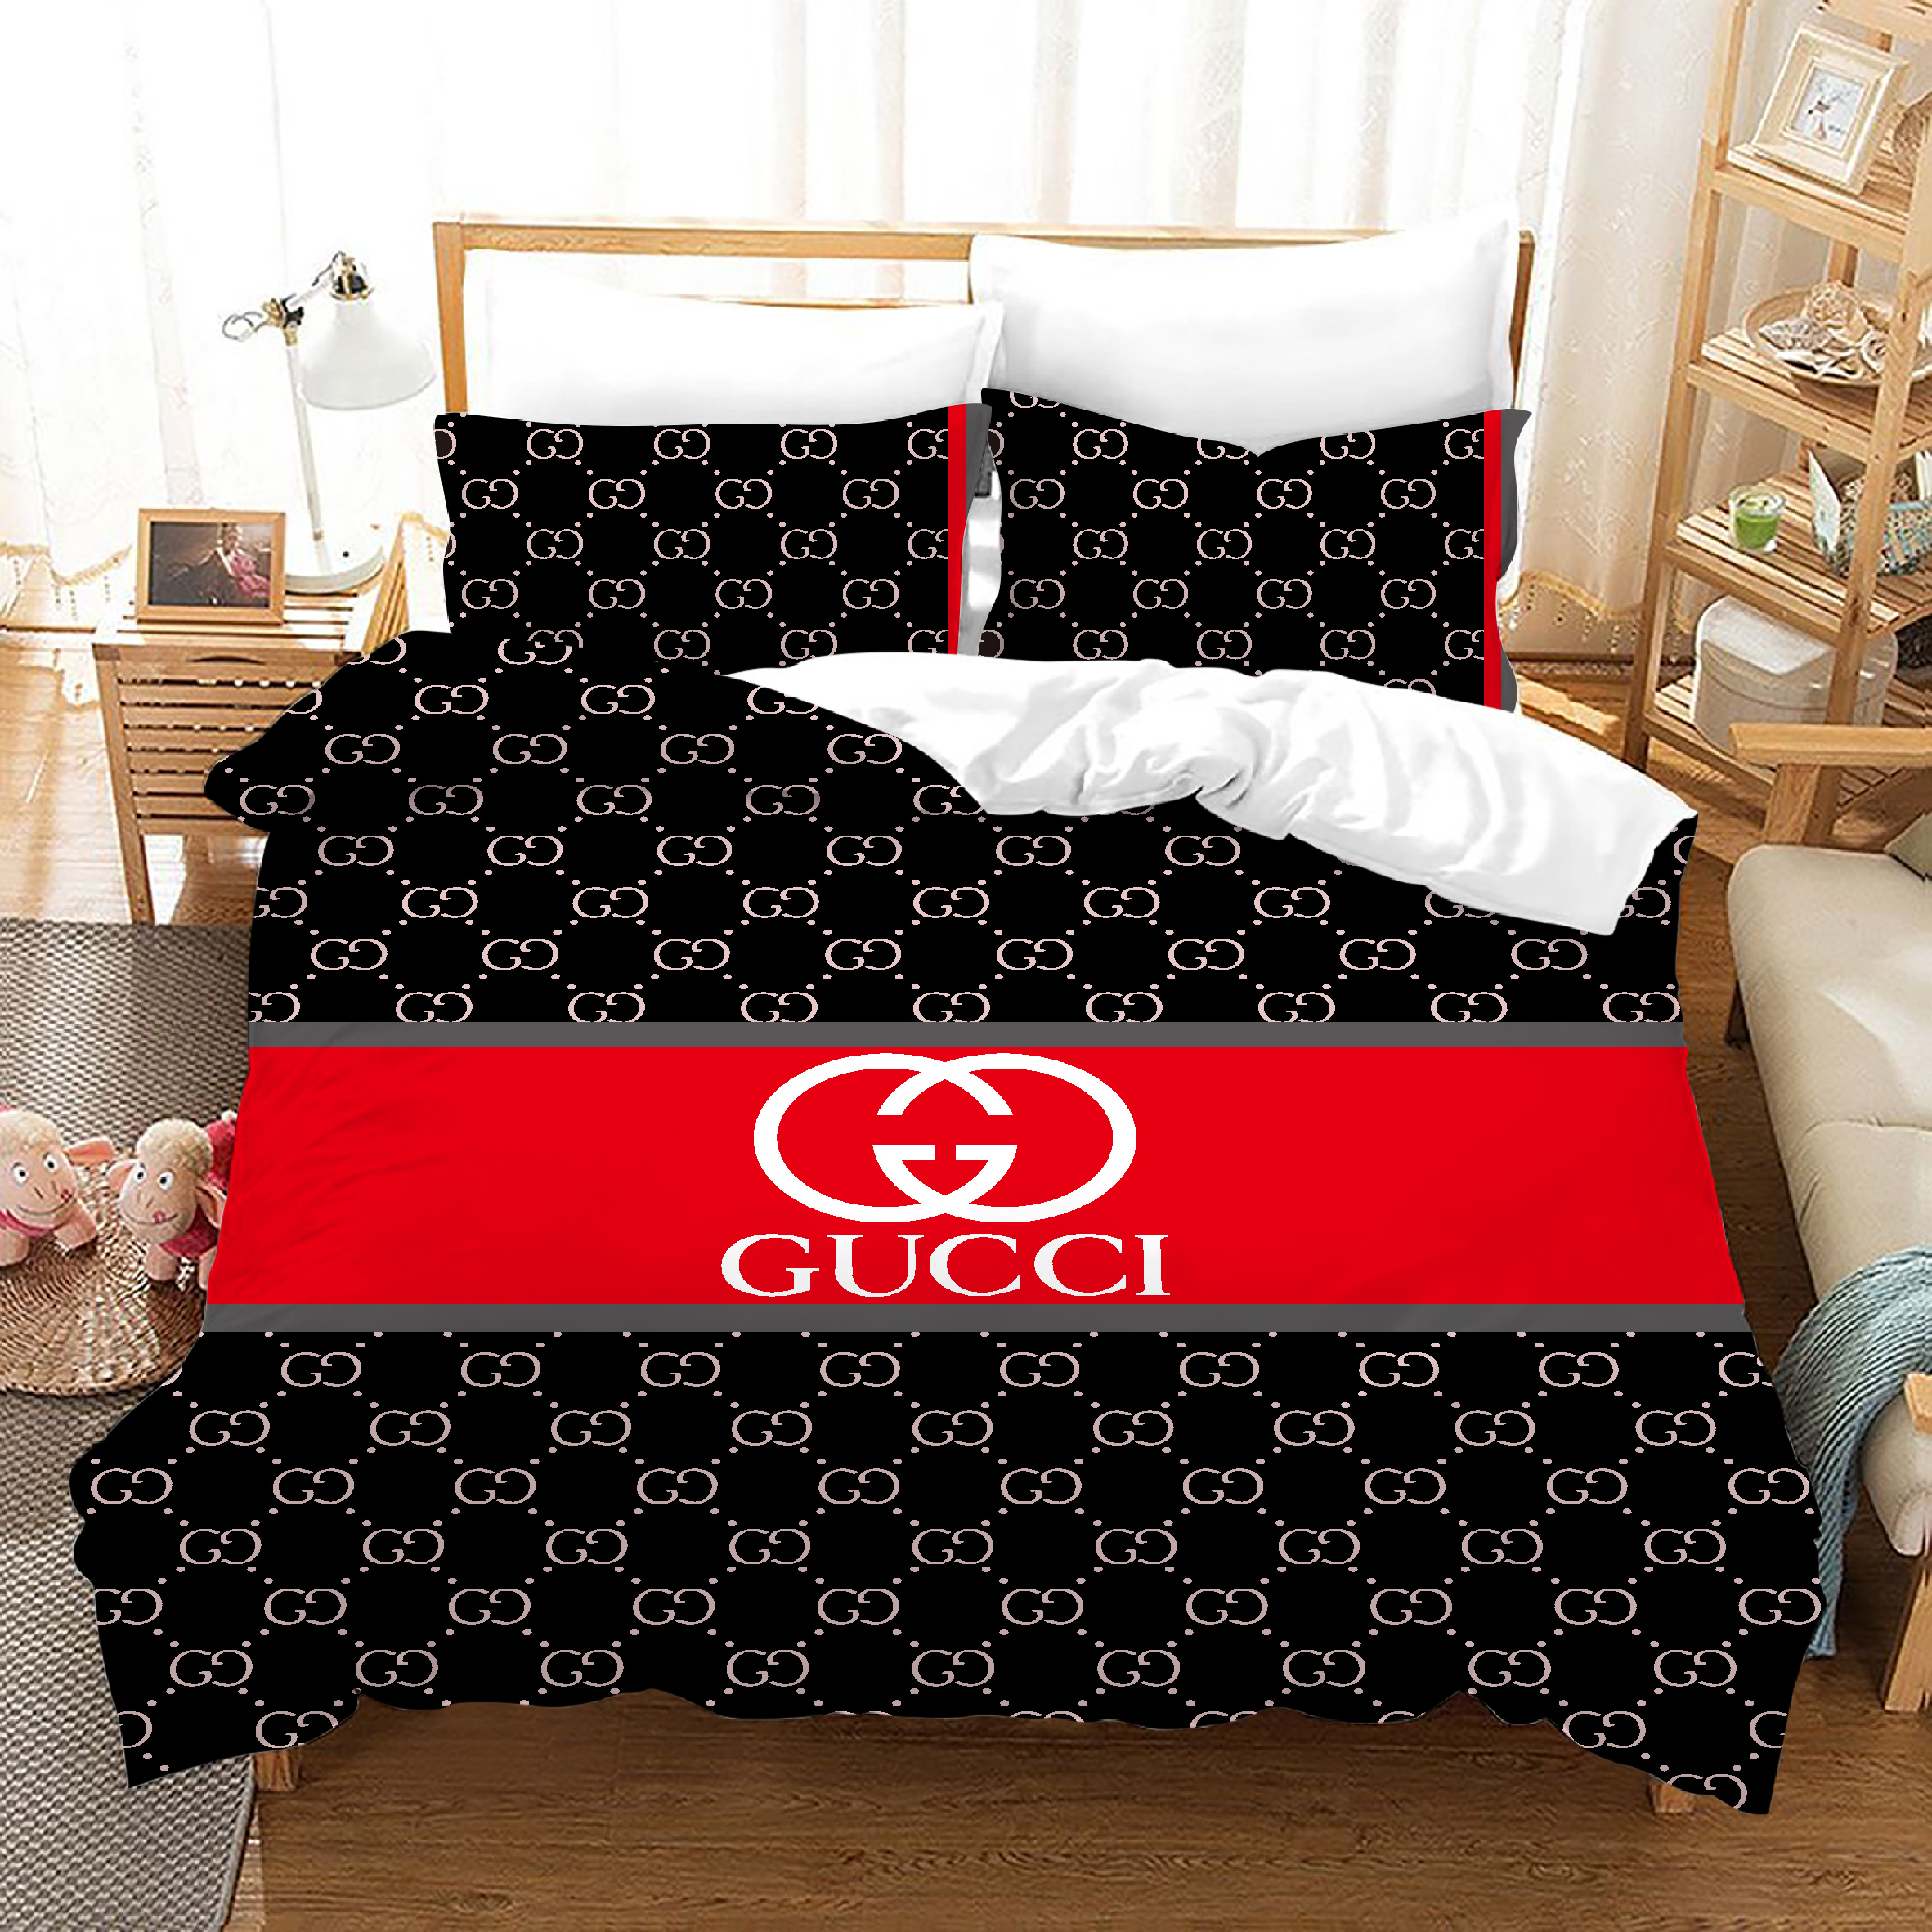 2020 Hot Selling 100% Polyester Digital Print Bedding Classical Superior Quality  famous brand Duvet Cover adult bedding set